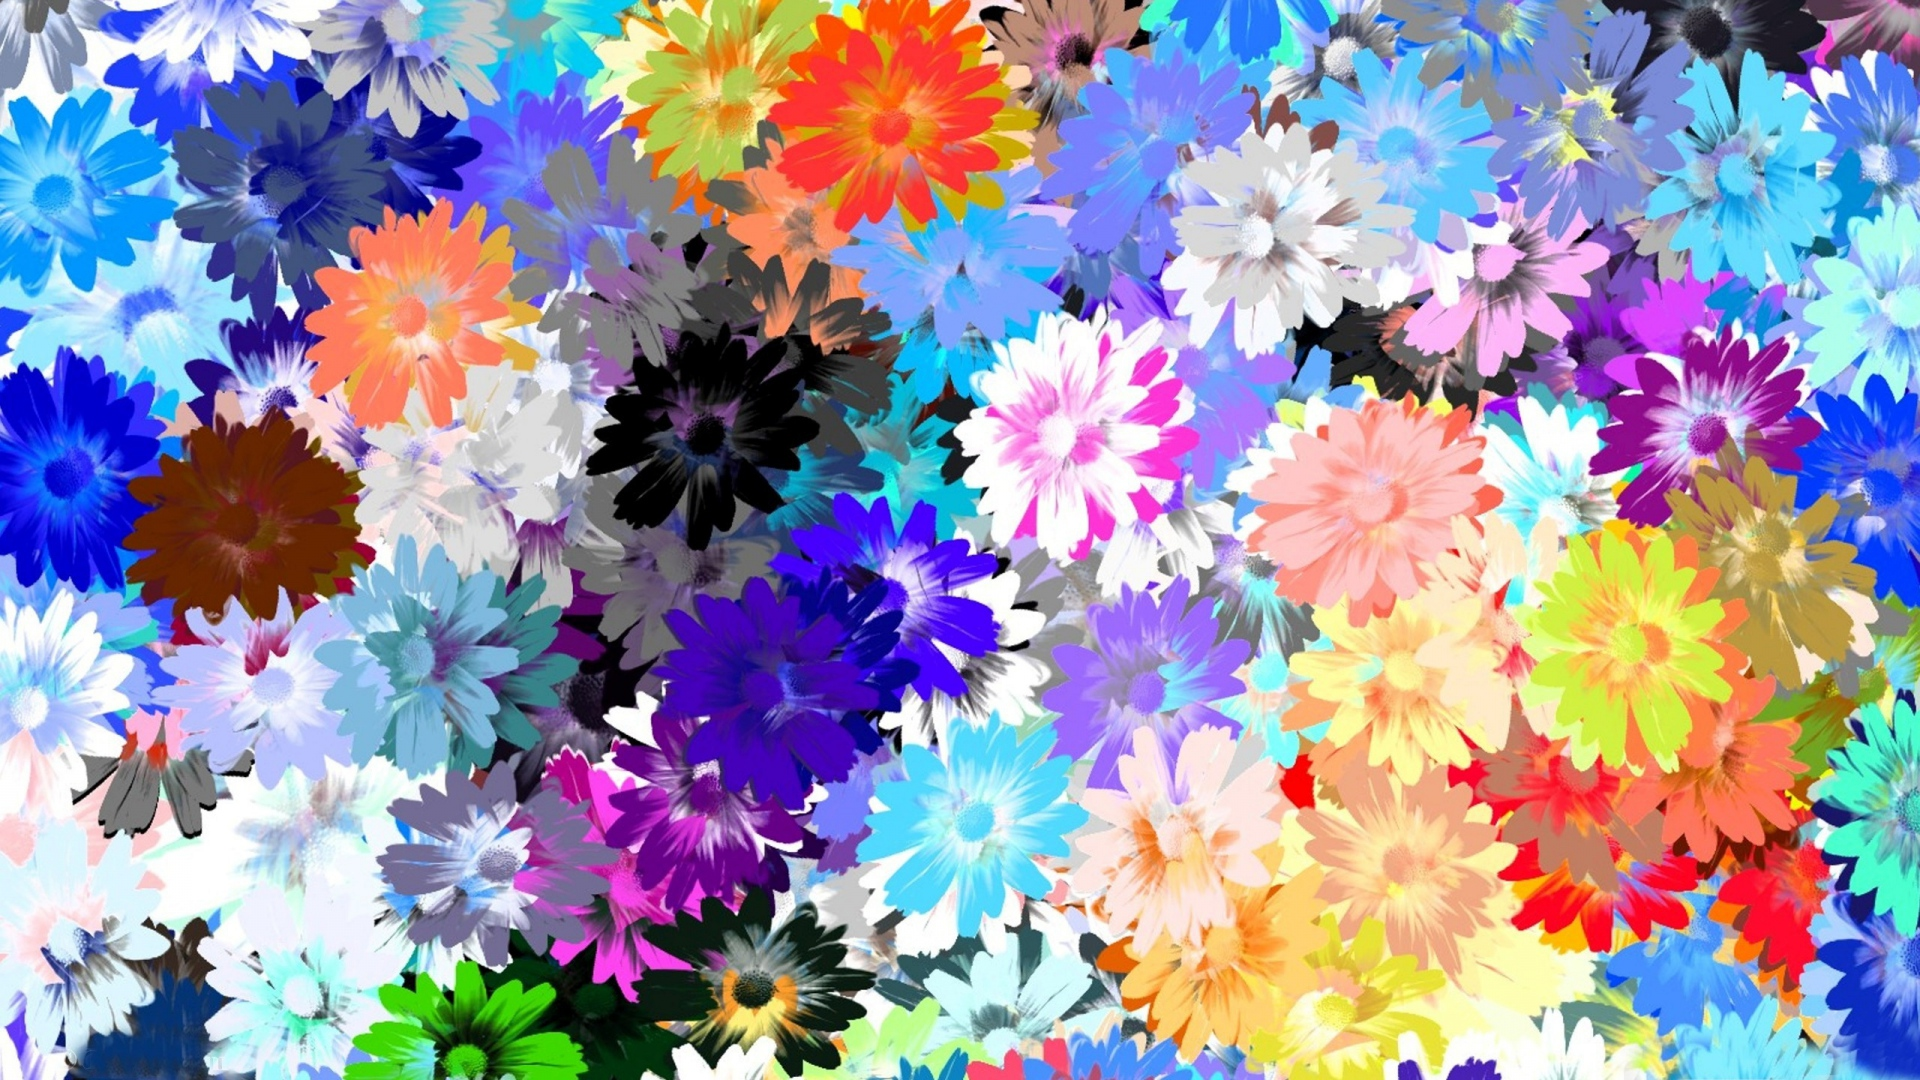 Flower Drawing Wallpaper At Getdrawings Com Free For Personal Use